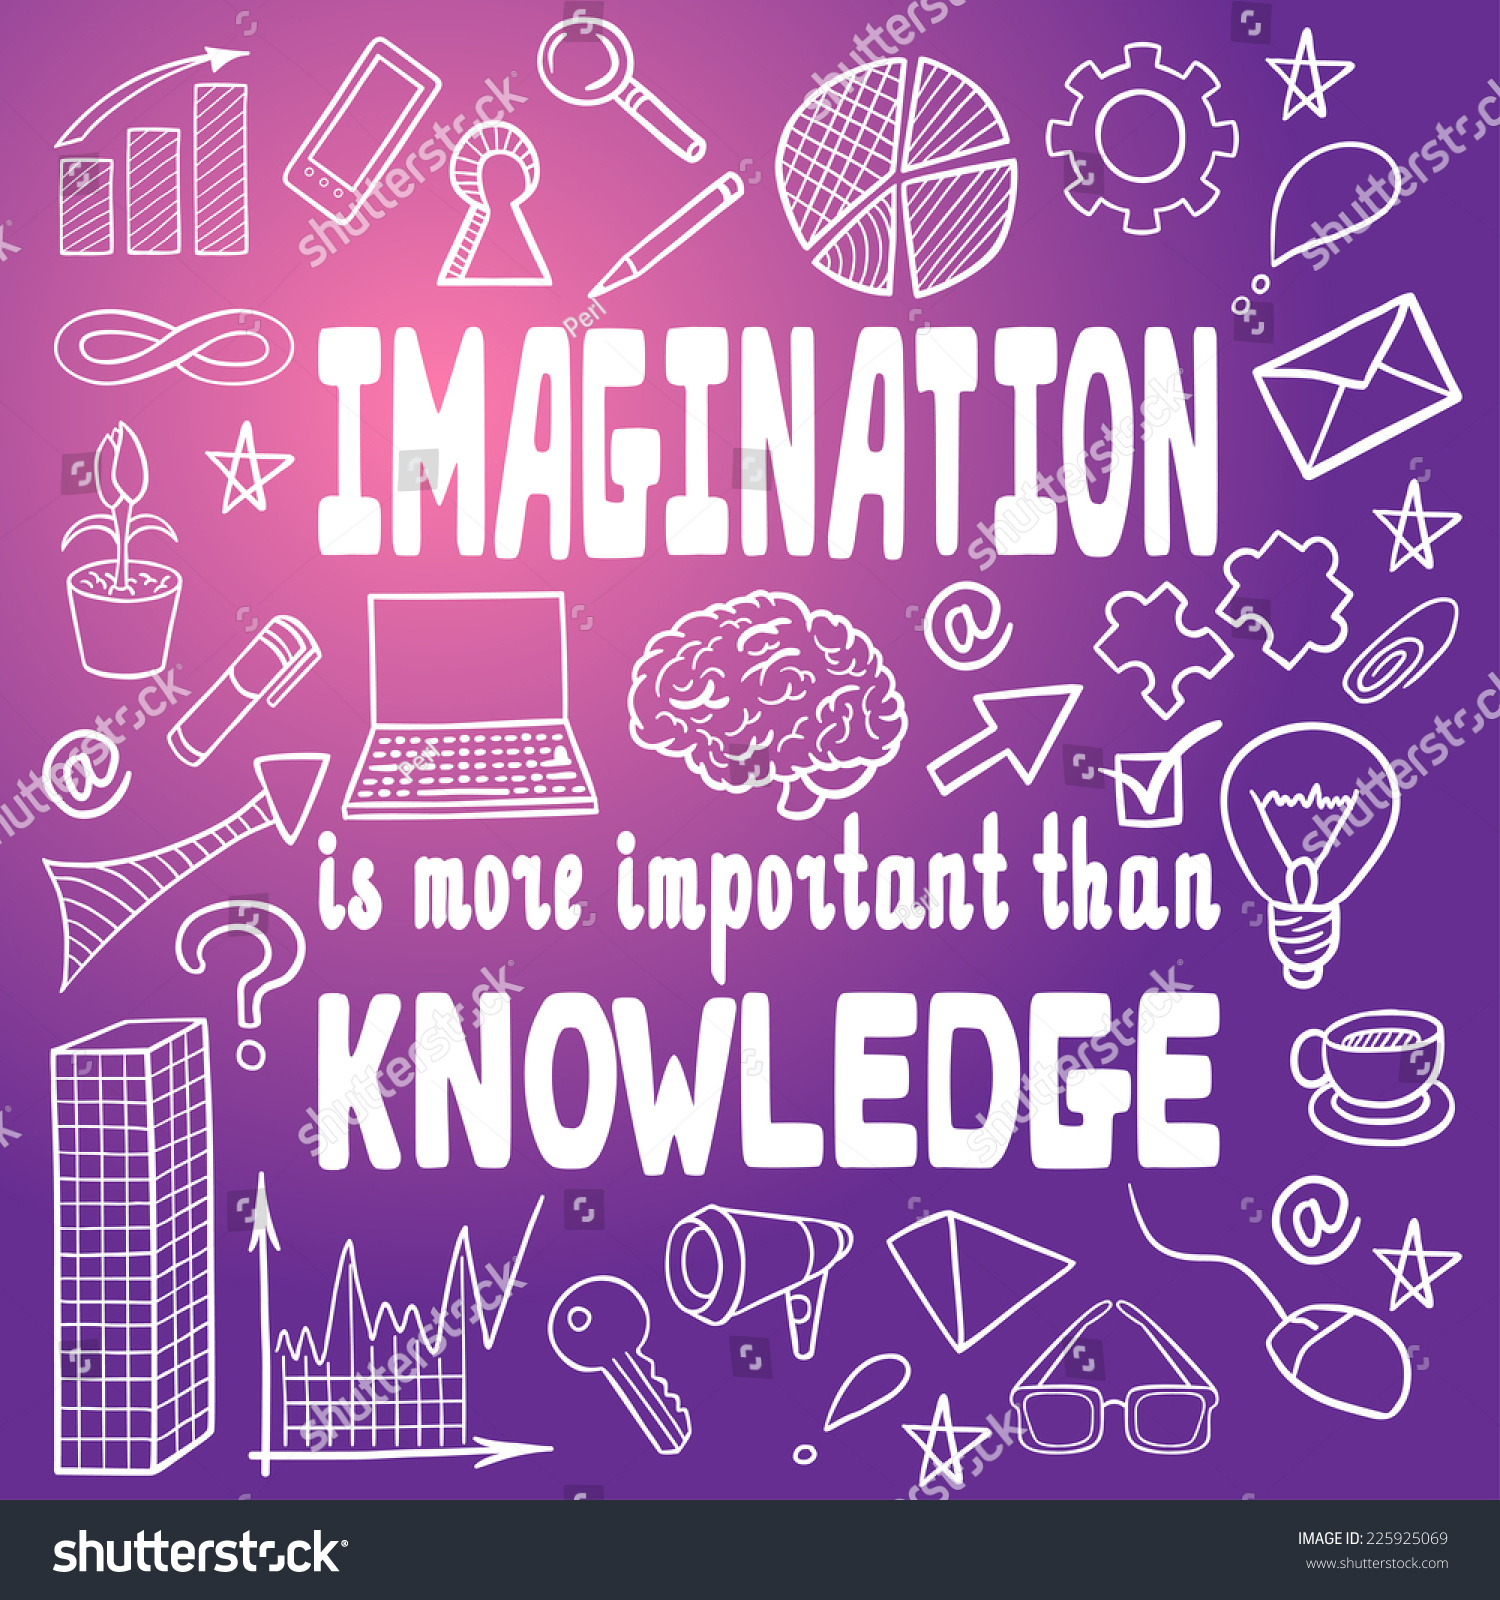 Einstein Quotes Imagination Is More Important Than Knowledge: 'Imagination Is More Important Than Knowledge' By Albert